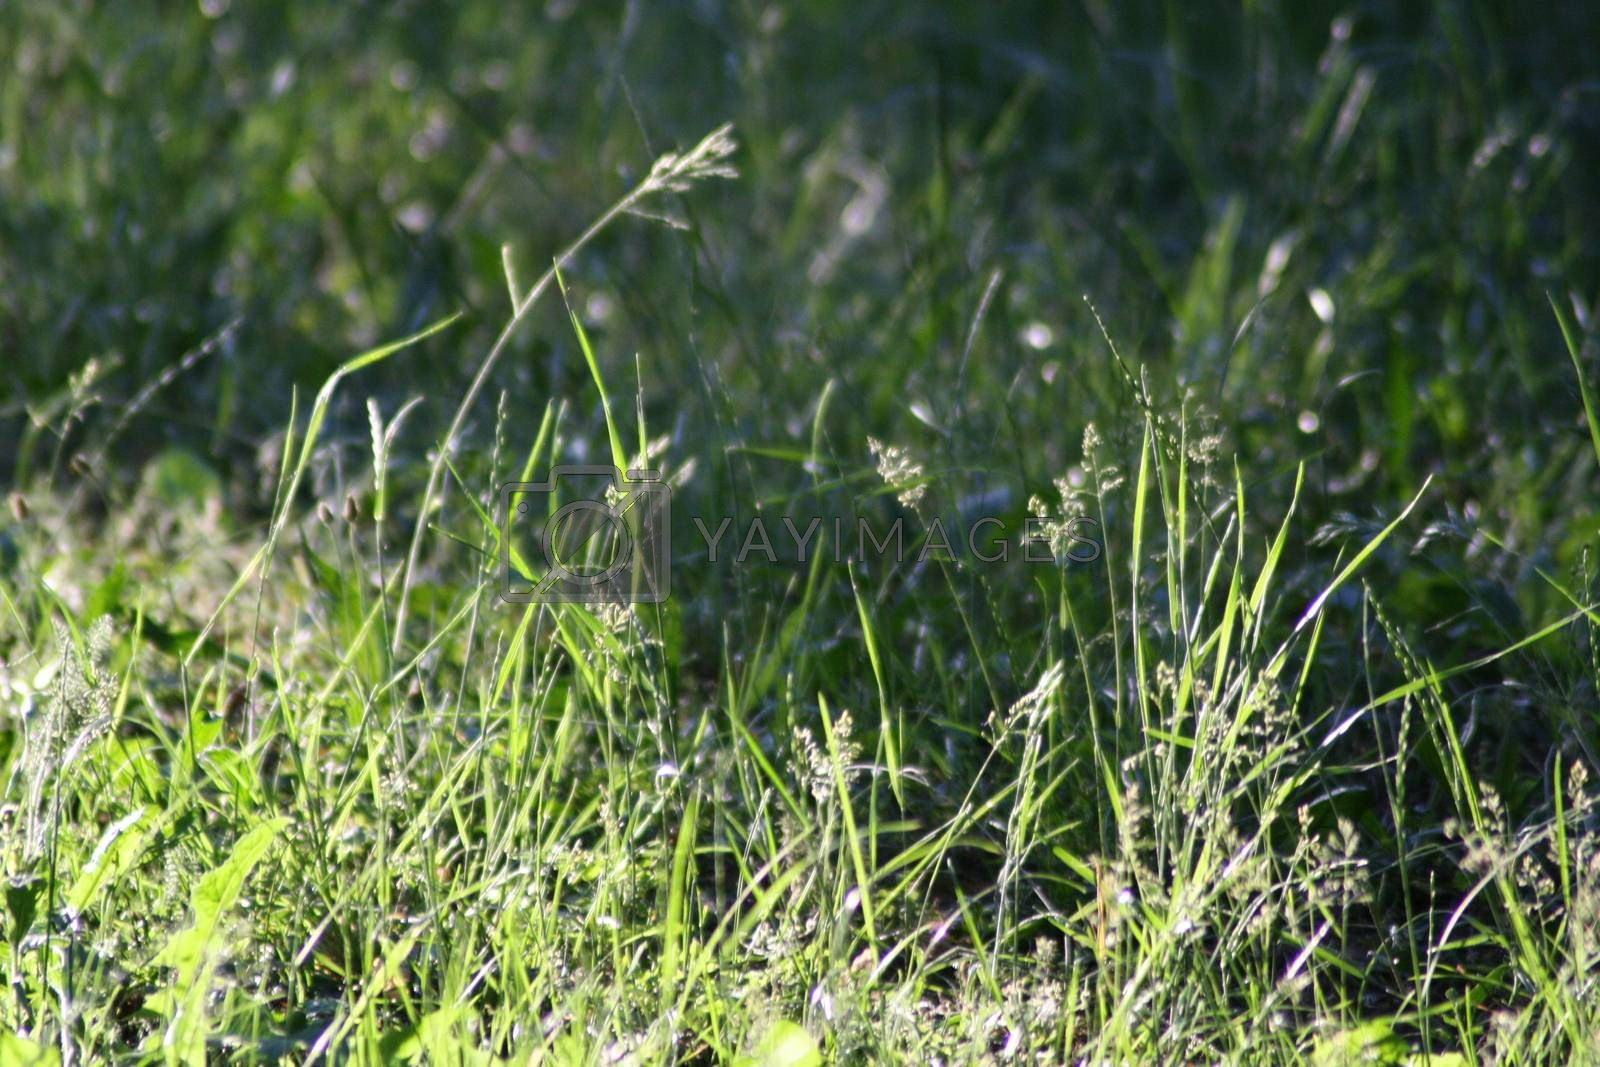 Royalty free image of A close up of a lush green field by balage941